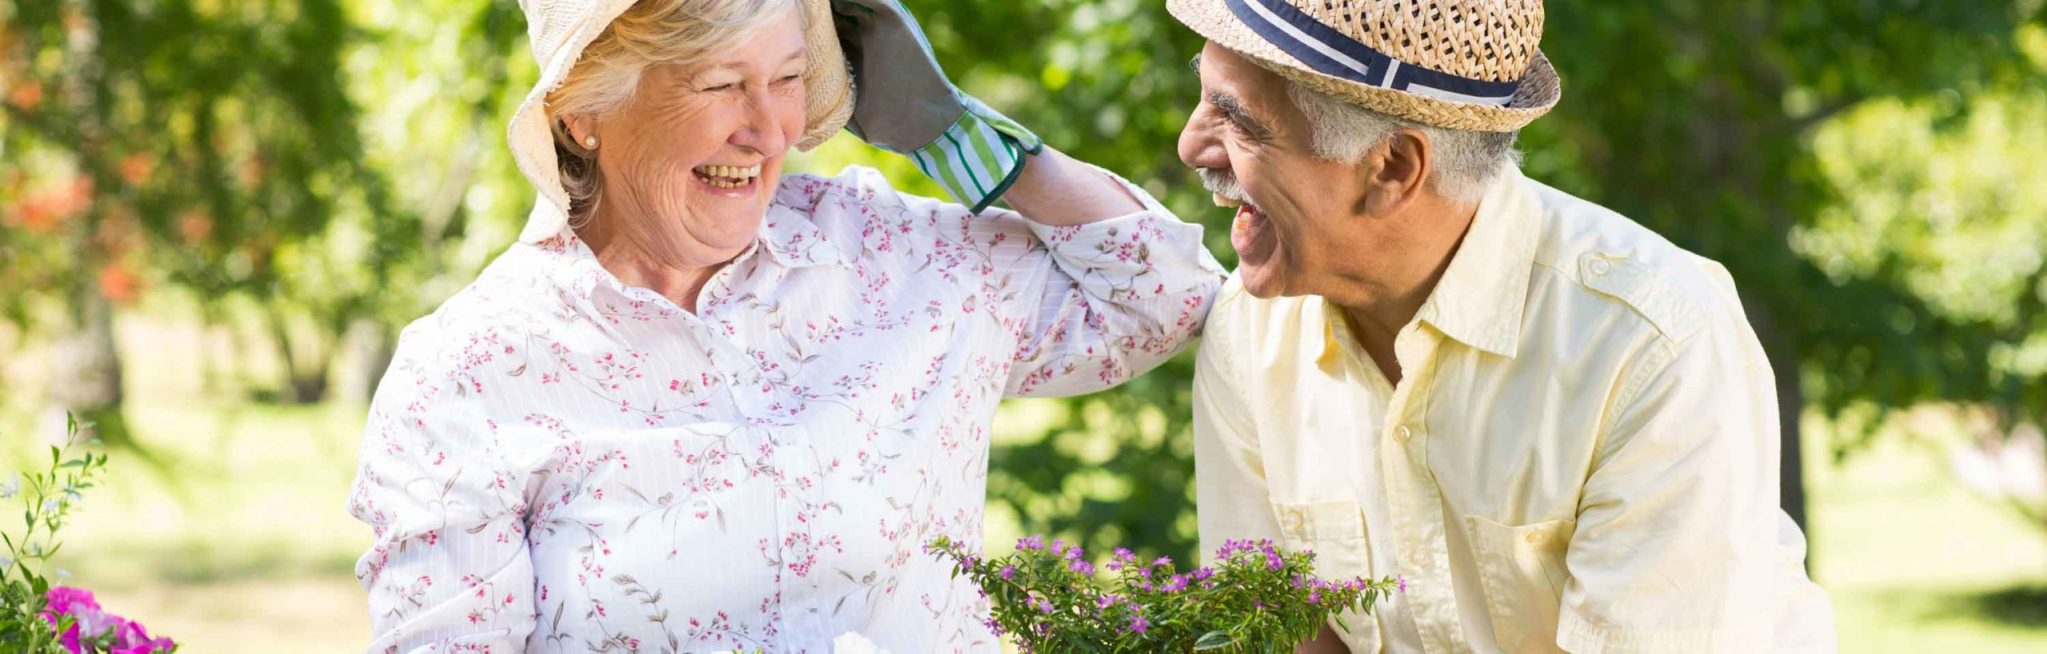 Senior friends are enjoying some time in the garden as part of the activities and recreation offered at Winchester Glen Retirement Community in Oshawa.